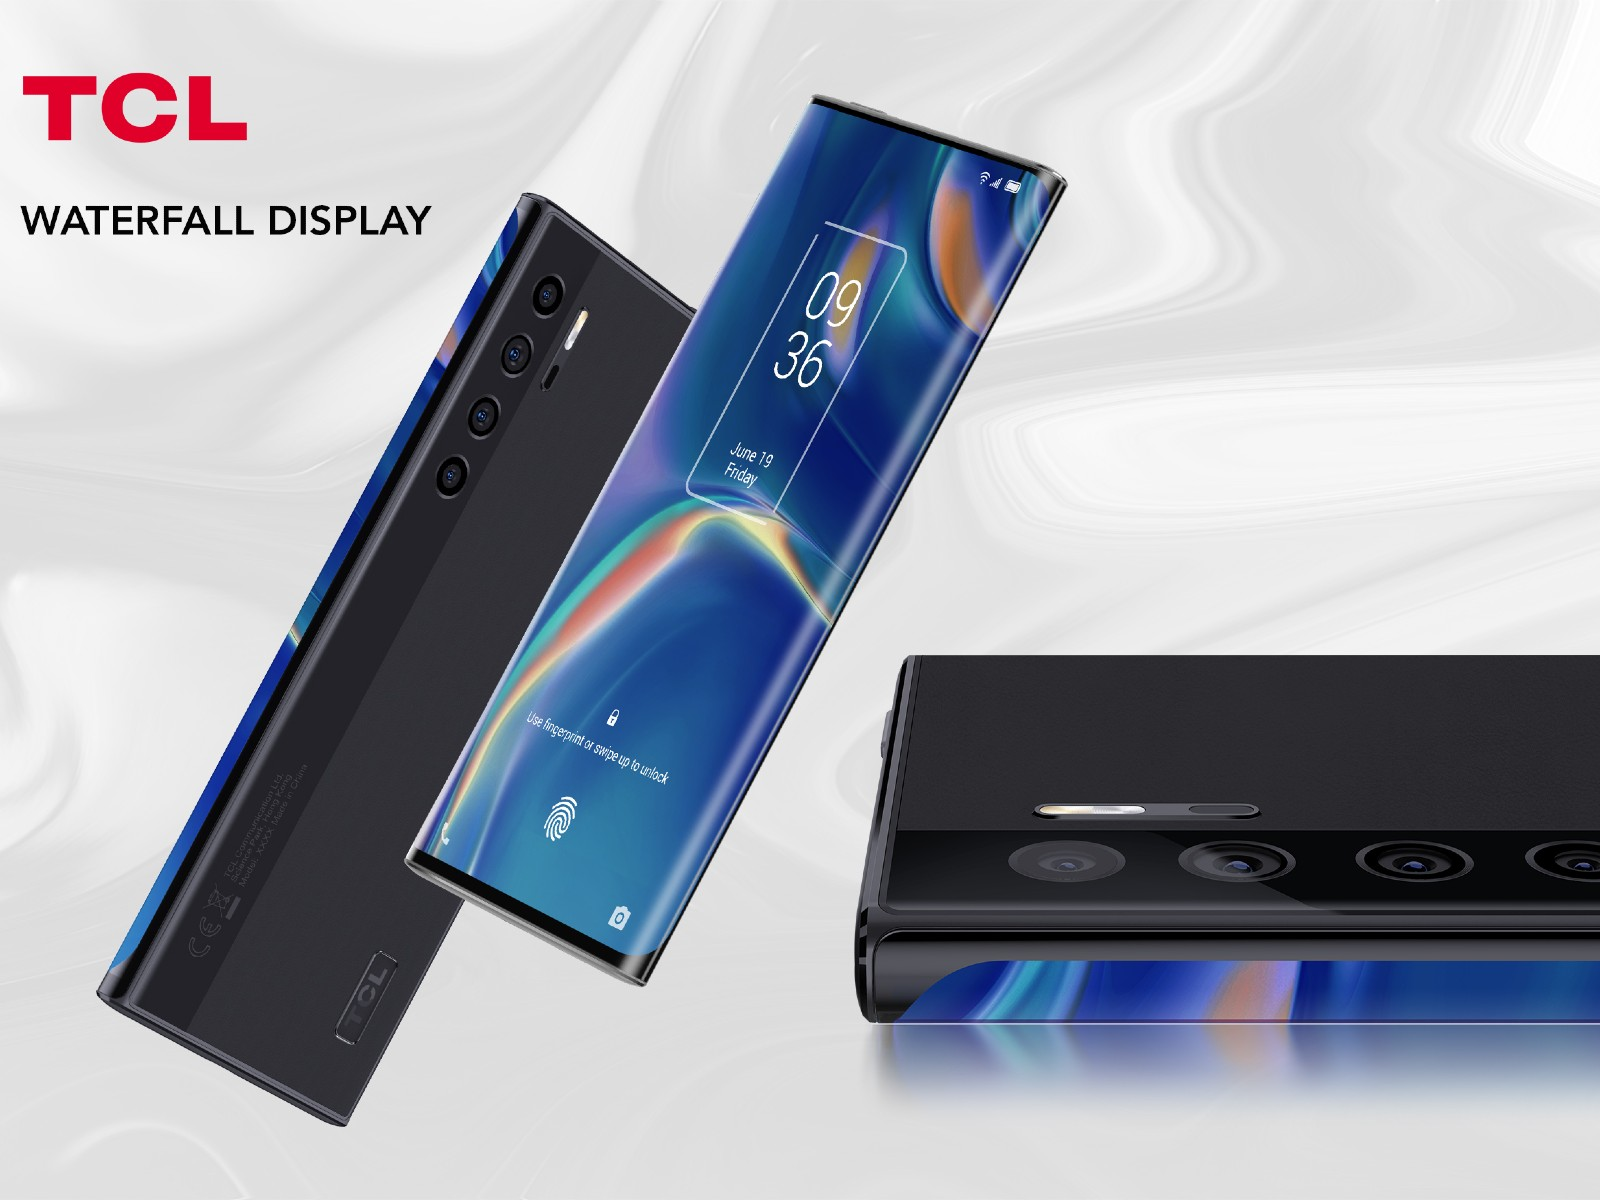 TCL waterfall display